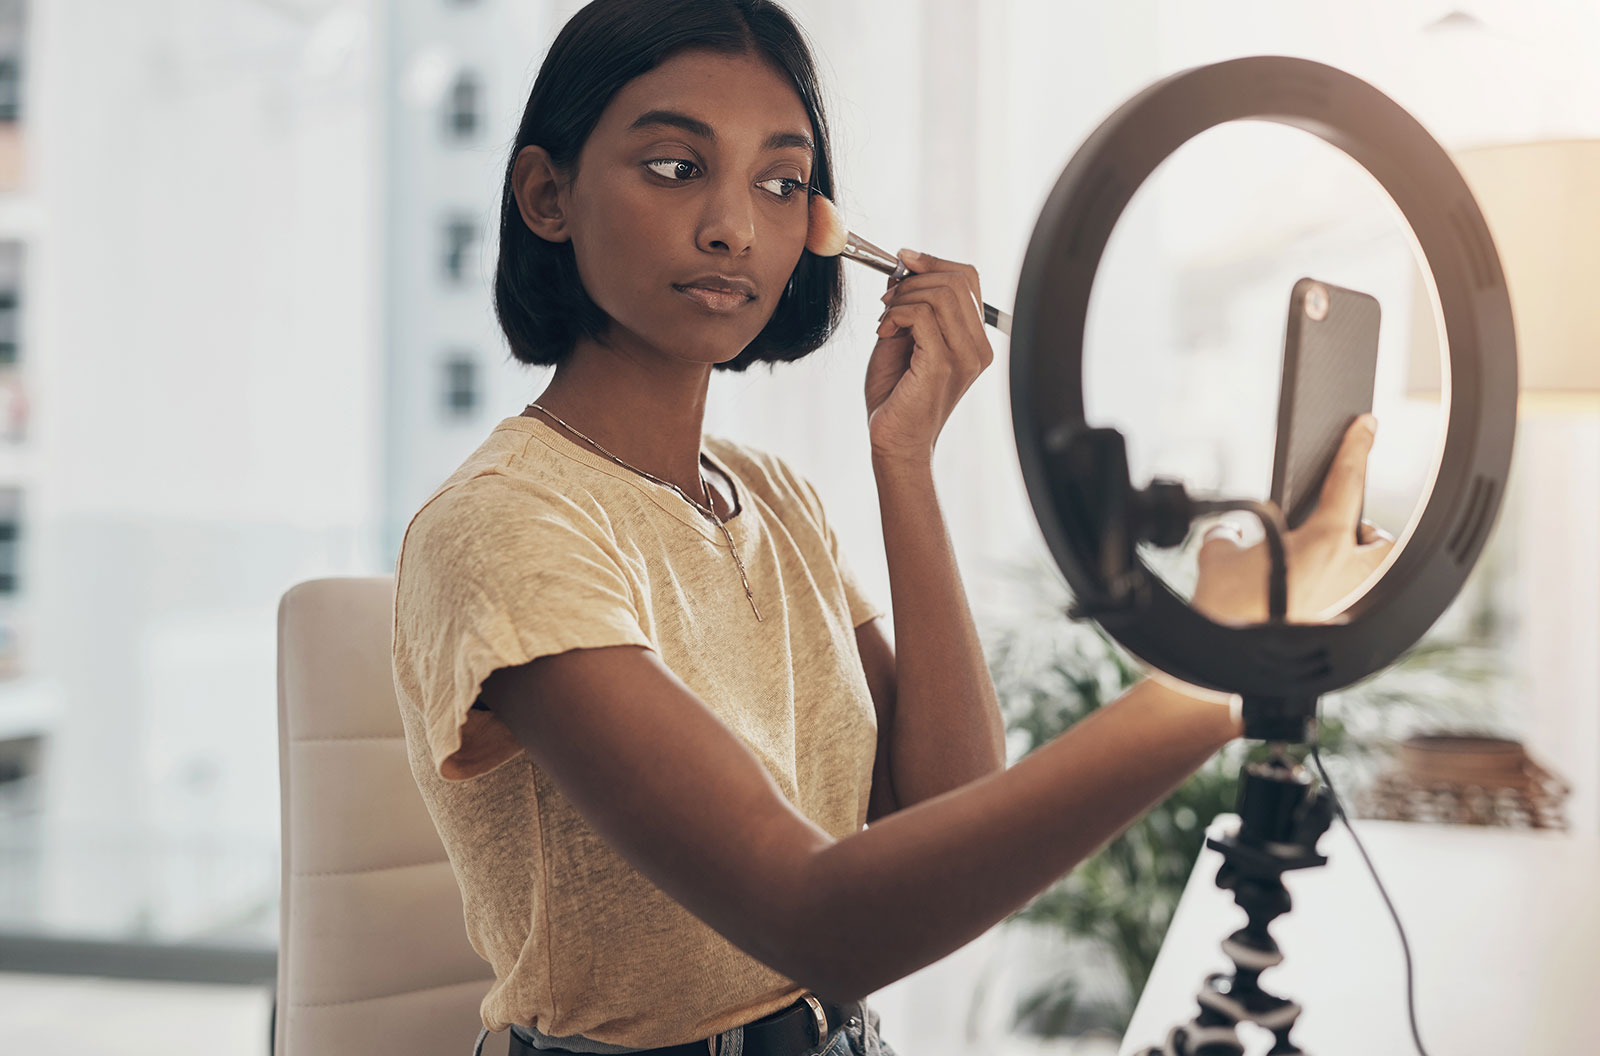 A young woman applying makeup while filming a beauty tutorial with her phone